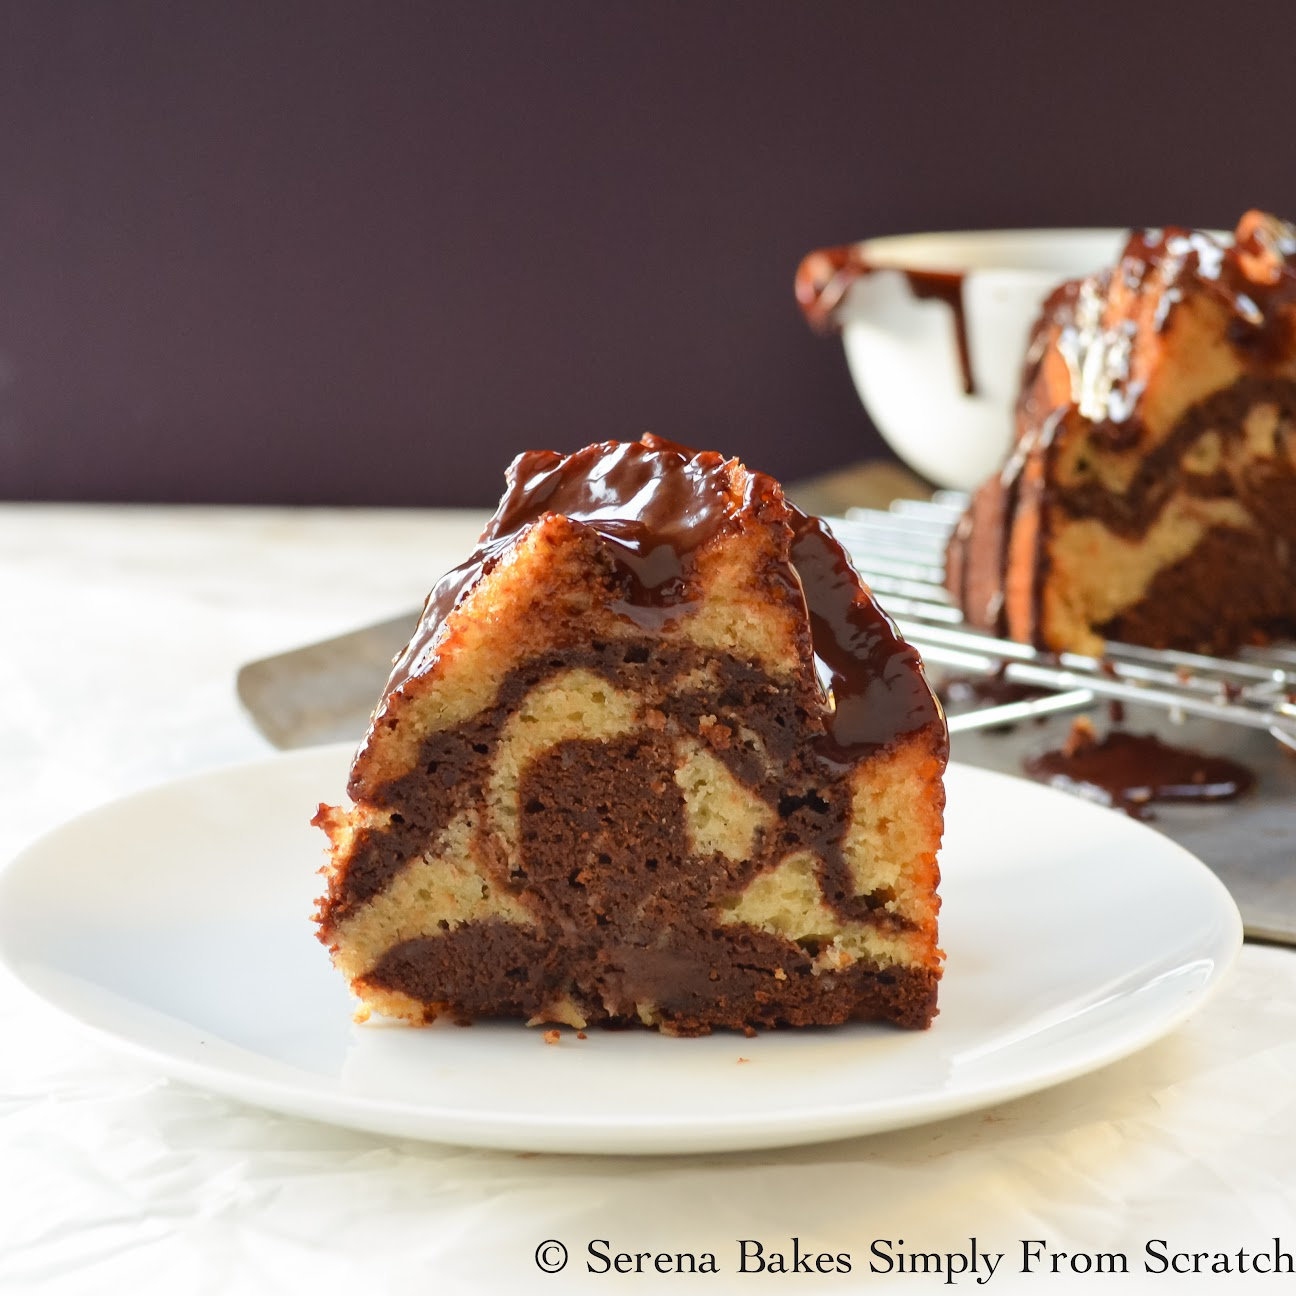 Buttermilk Marble Bundt Cake With Glossy Chocolate Glaze